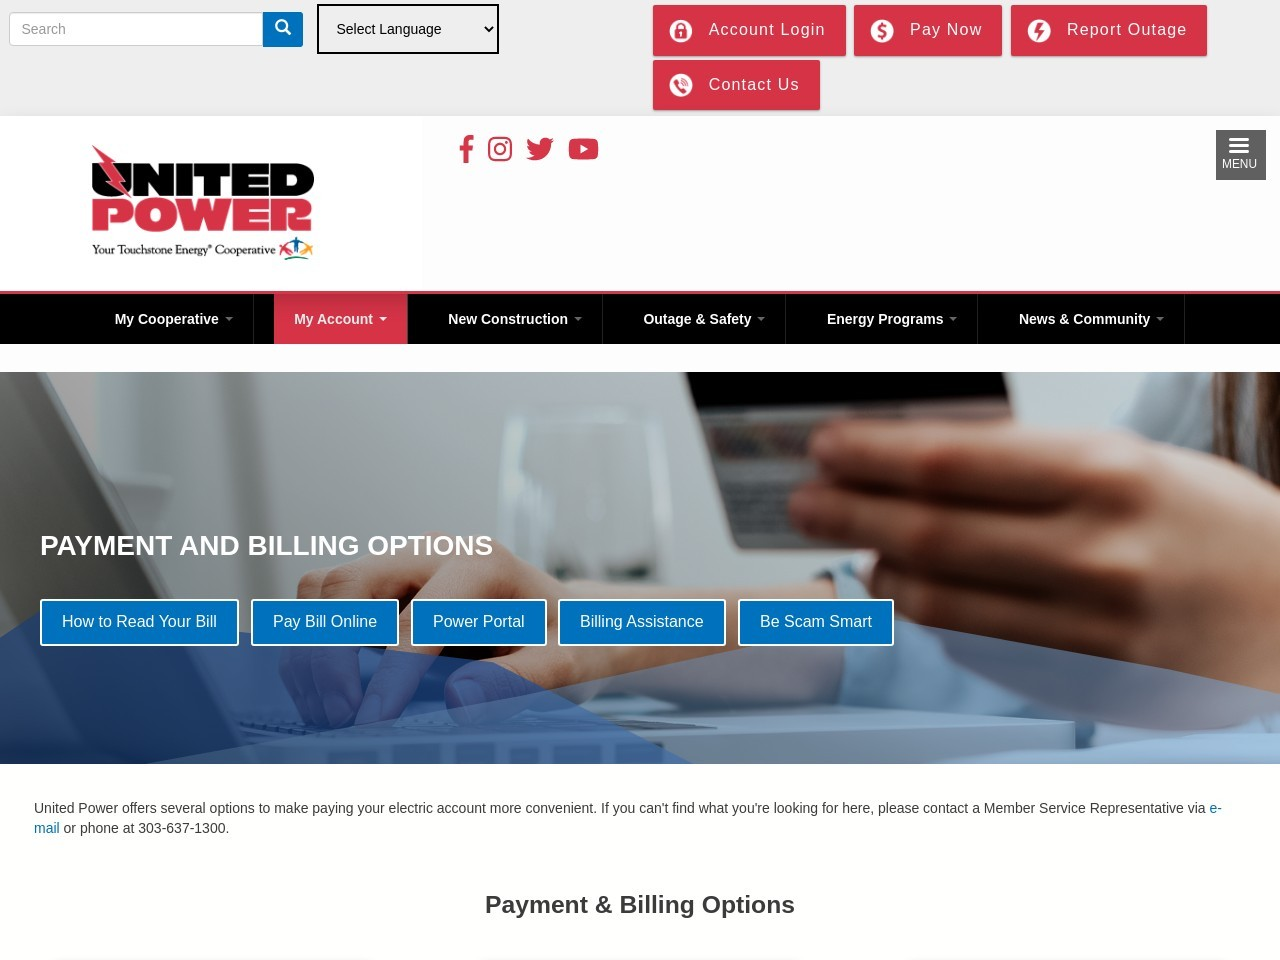 Payment and Billing Options | United Power